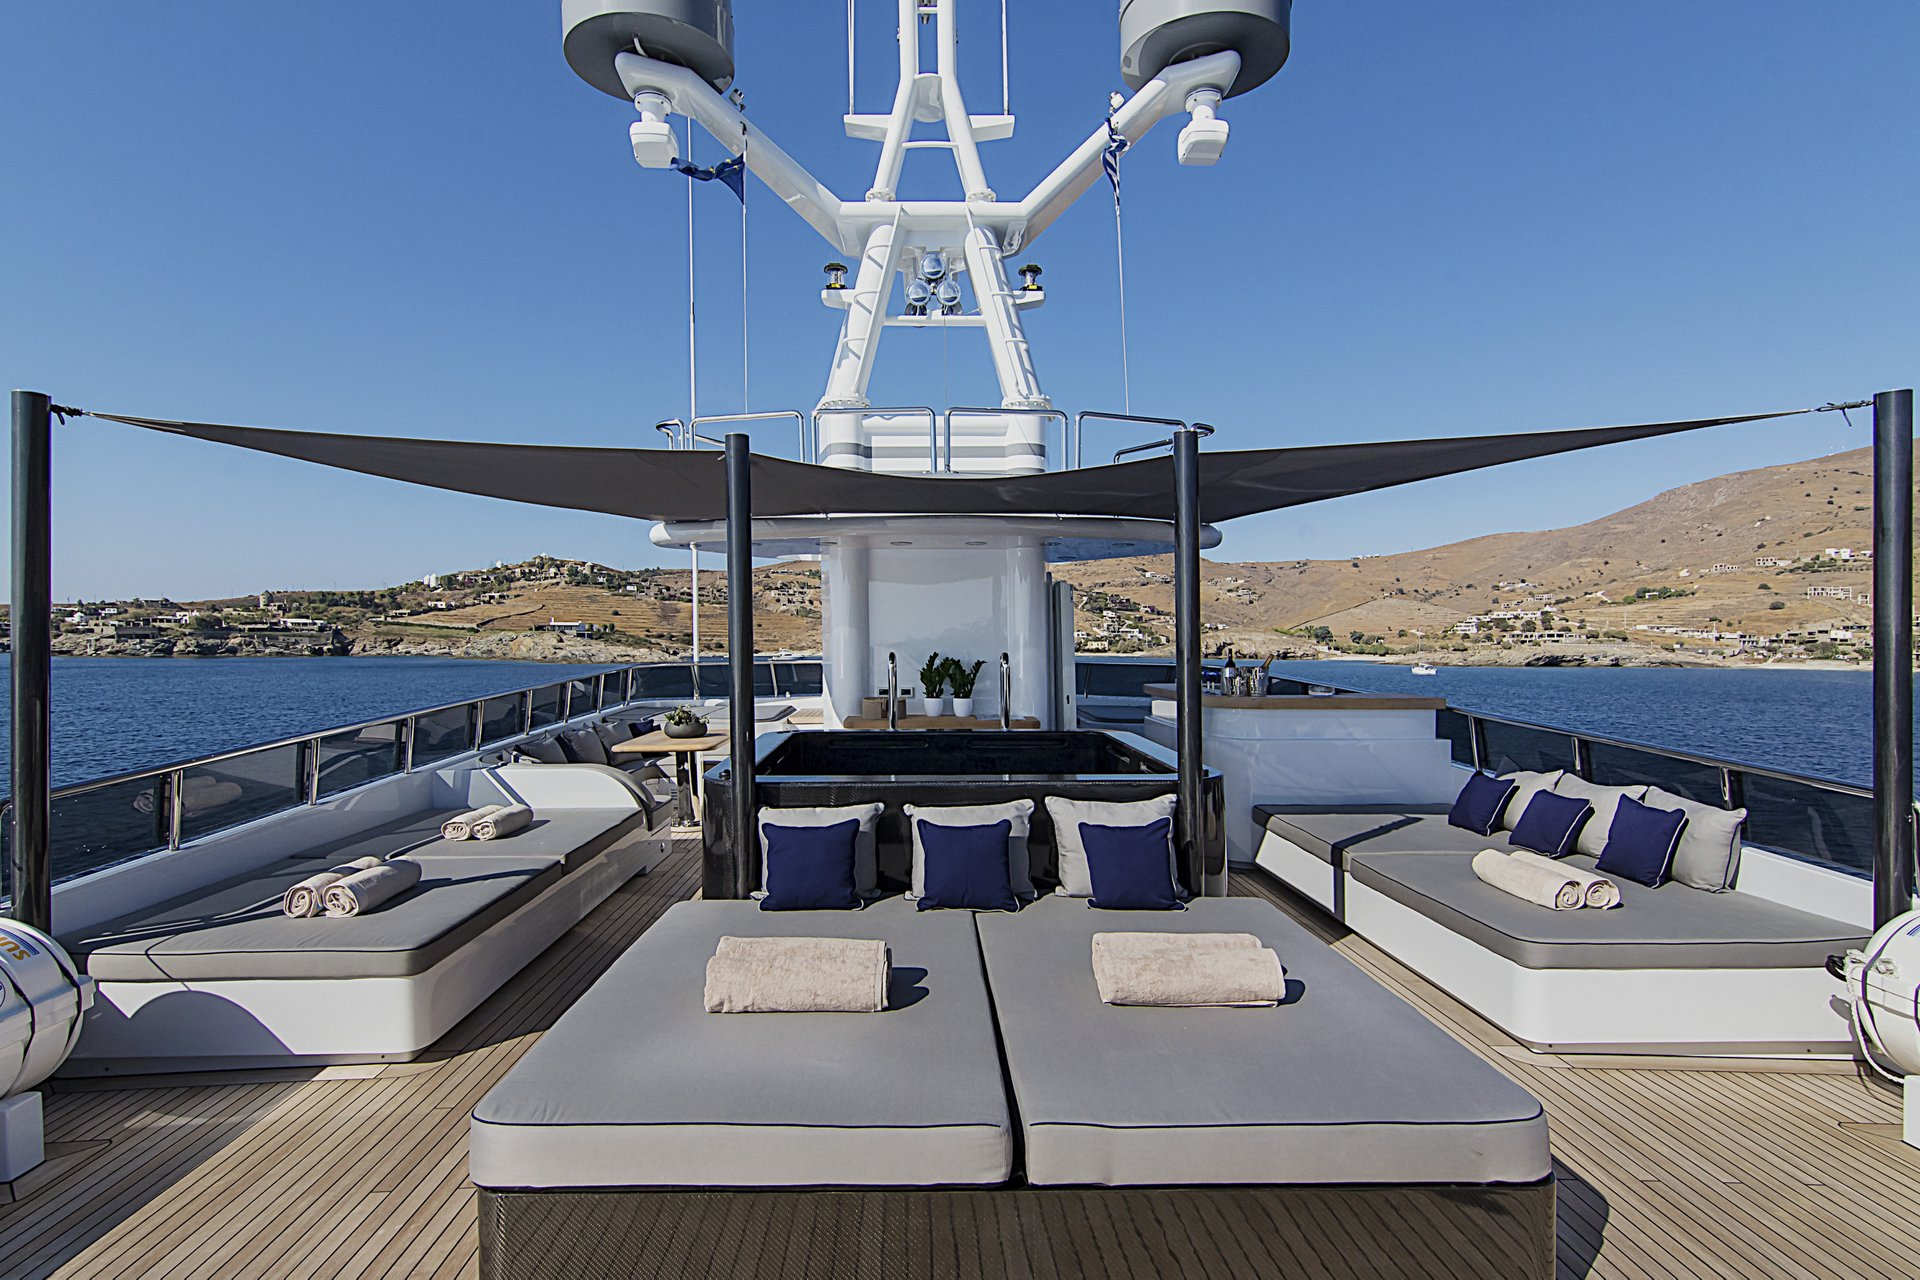 m/y invader yacht for charter deck lounging